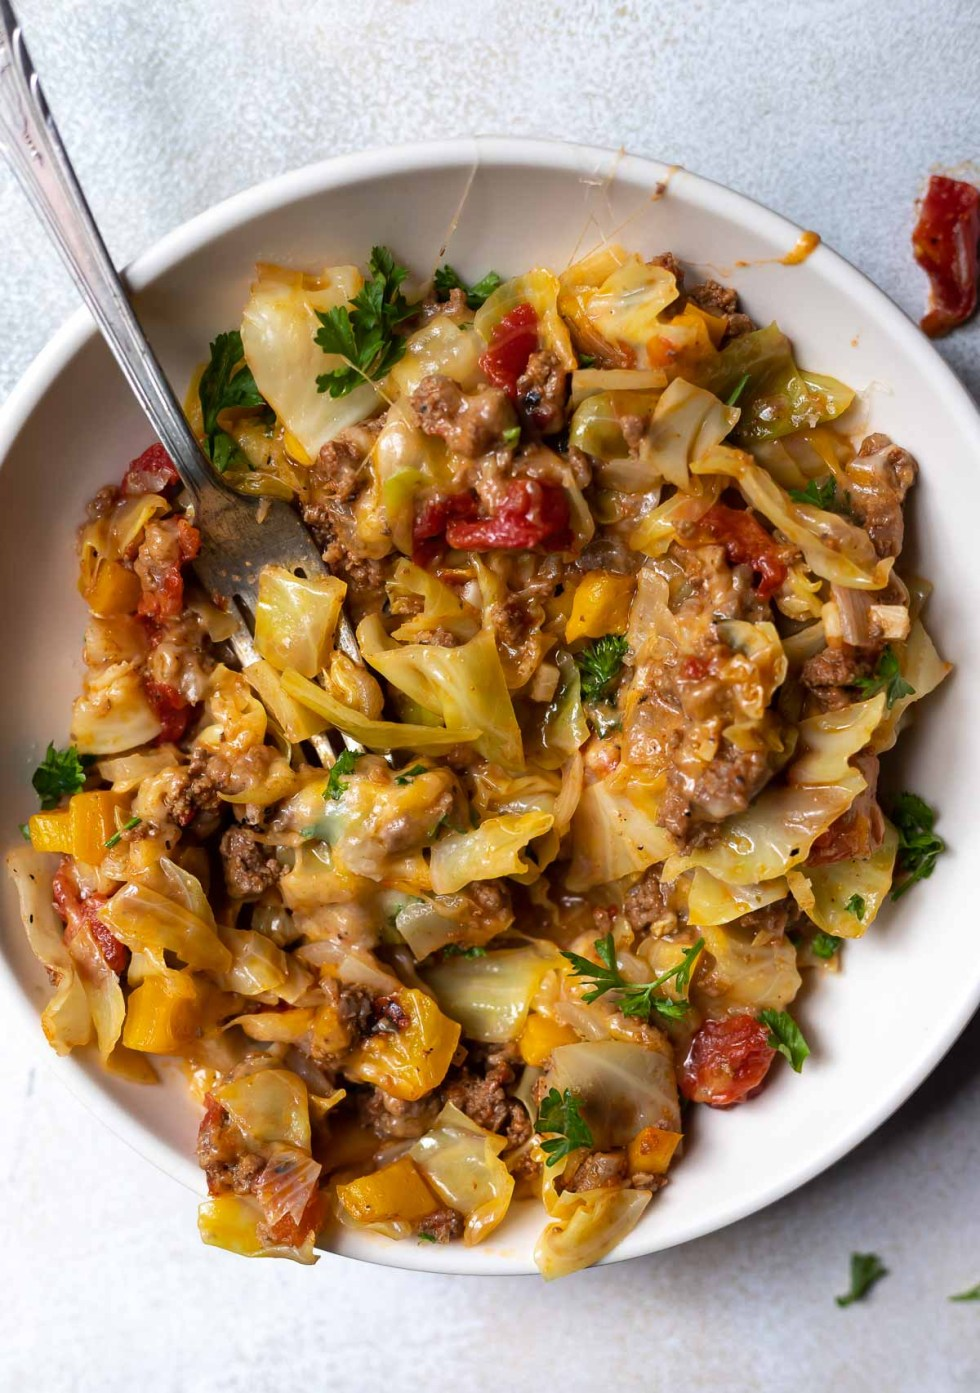 unstuffed cabbage casserole served in white bowl with silver fork